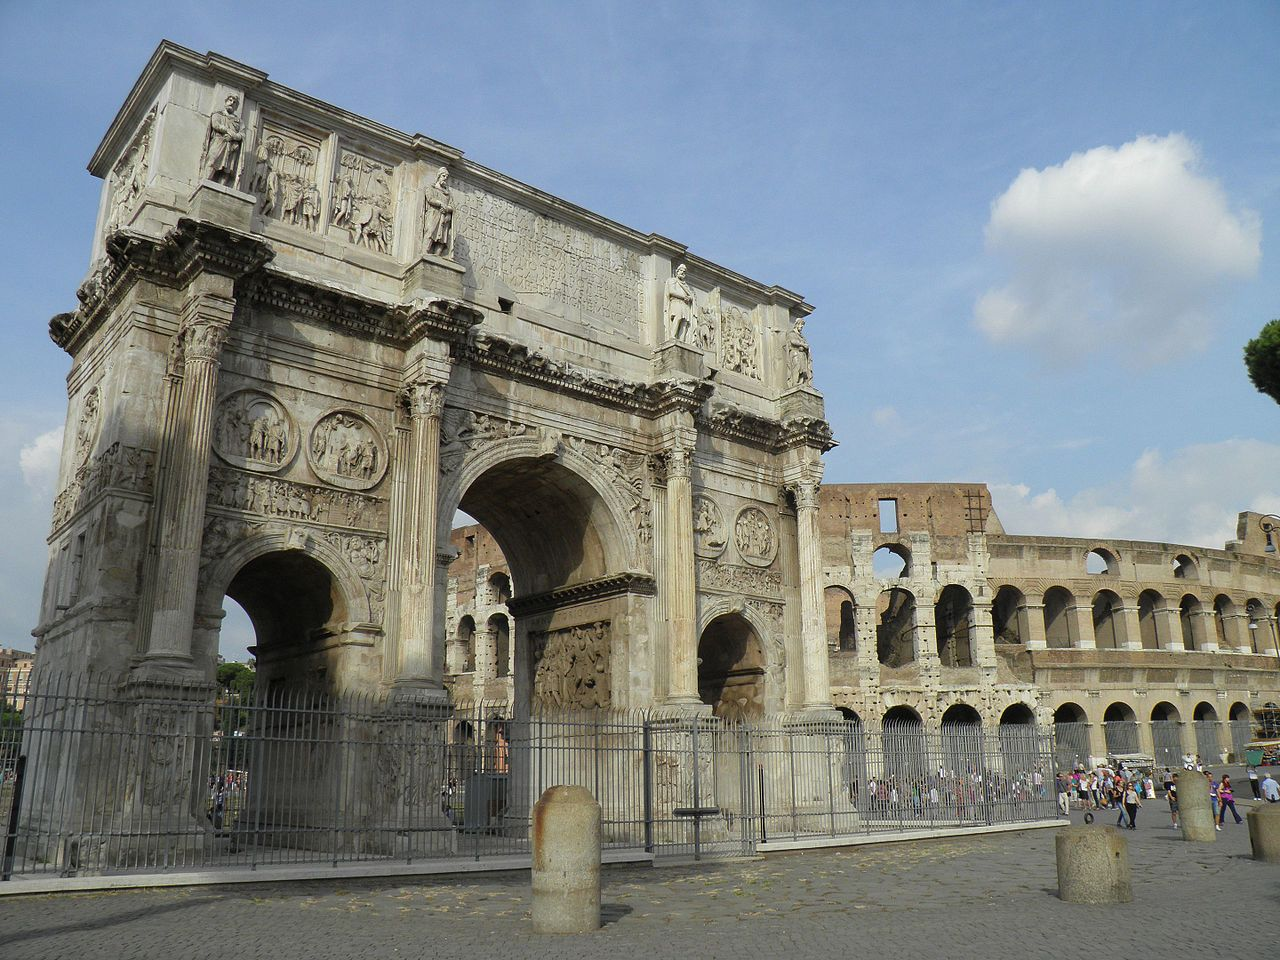 Arch of Constantine and Colosseum in the background, 315, Rome